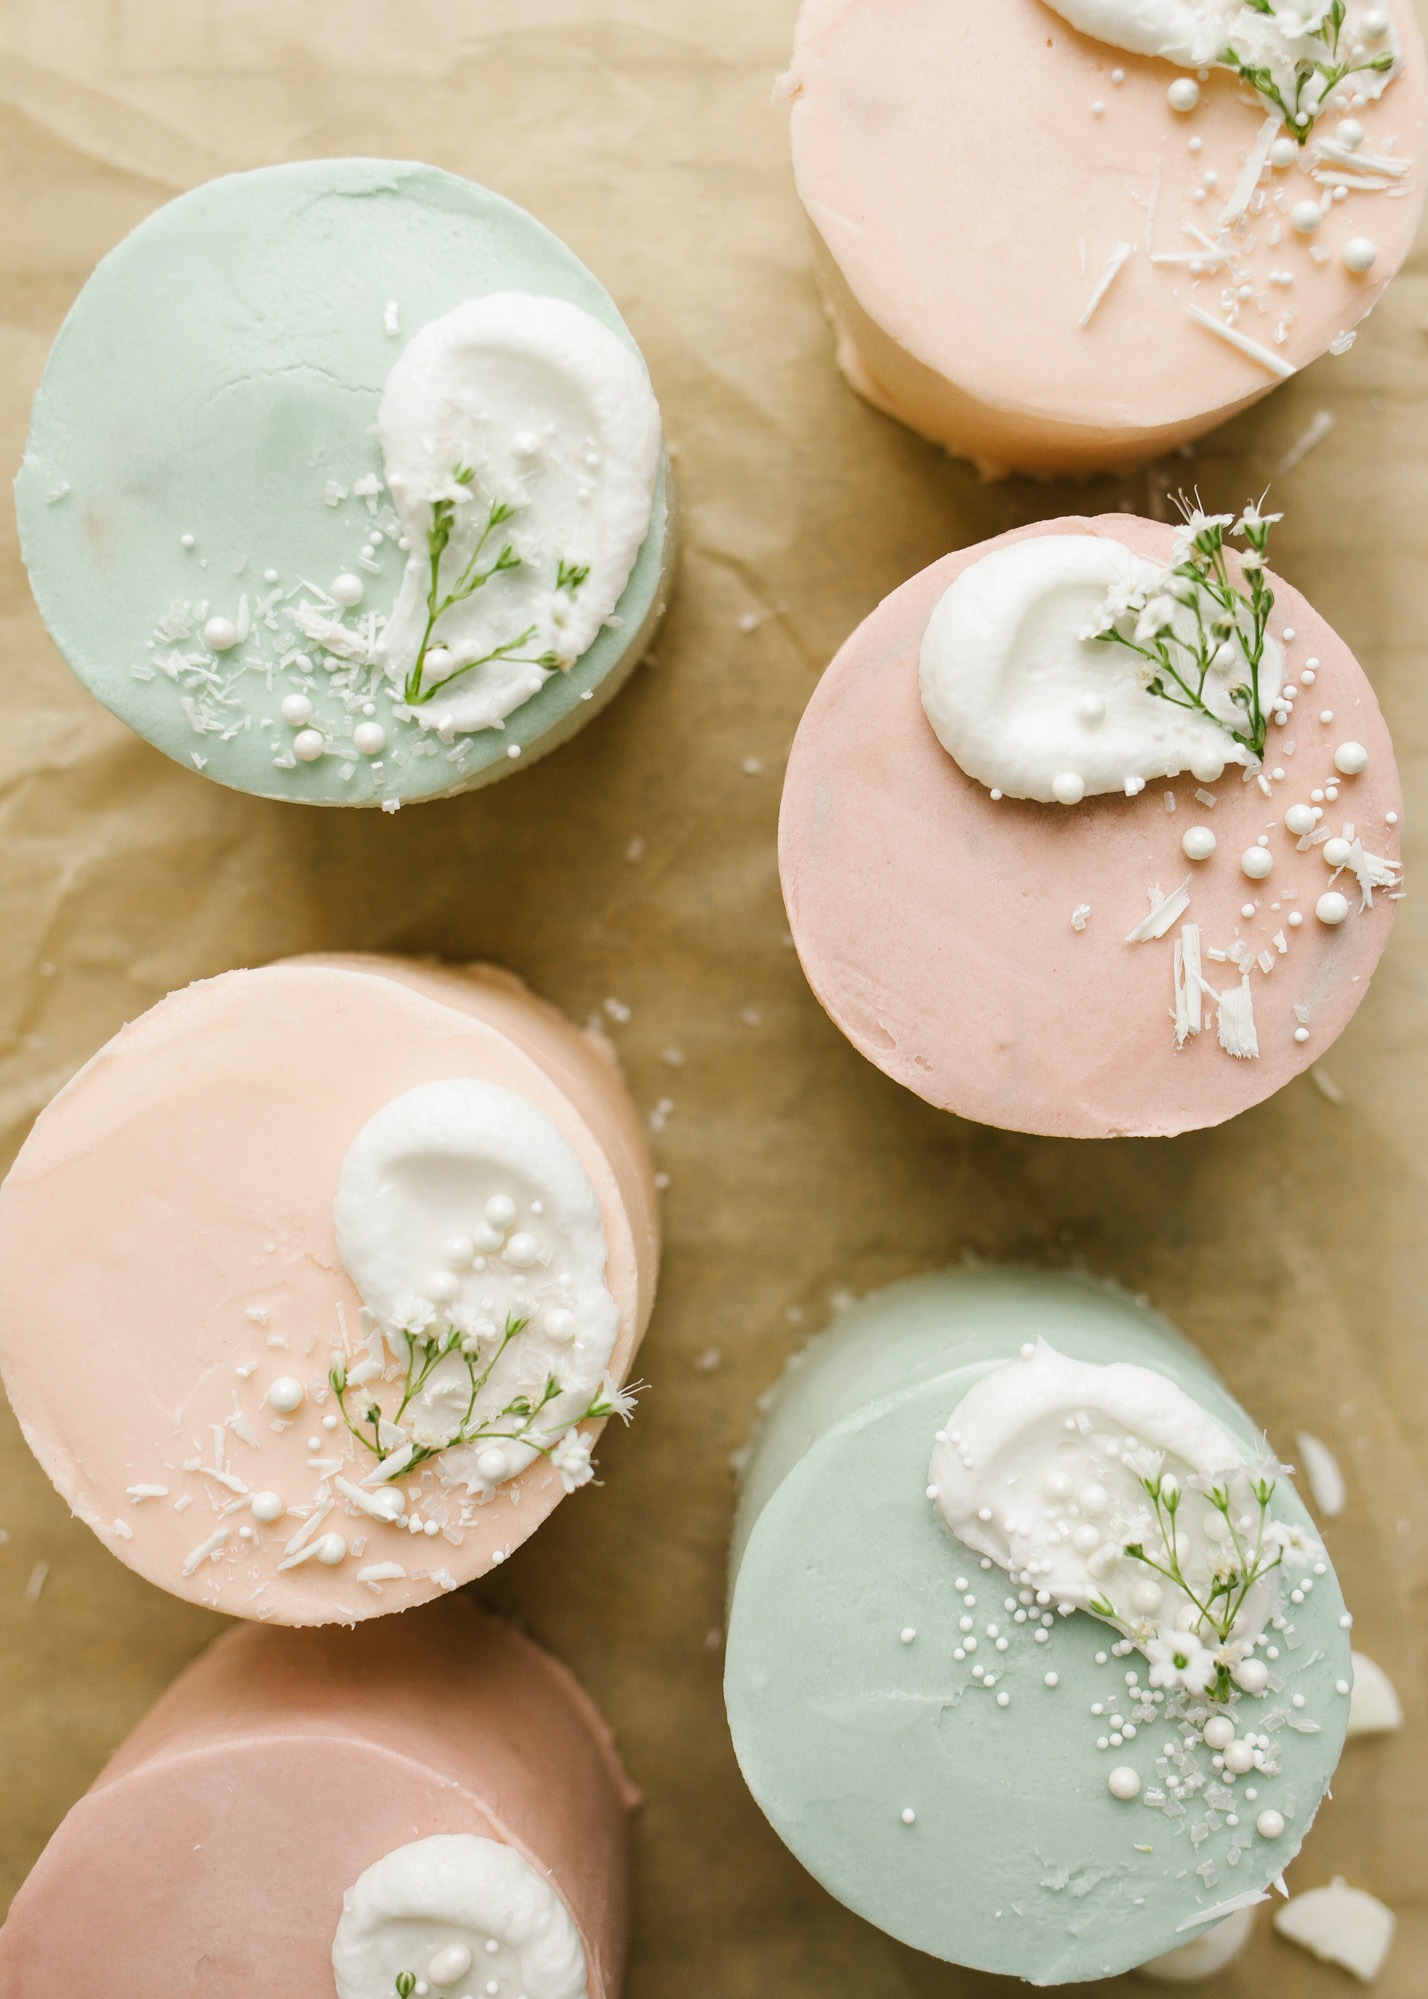 Mini Layer Cakes by Wood and Spoon blog. These are tiny three layer pastel cakes perfect for parties, spring holidays, and Mother's Day. The small vanilla cakes are baked in a sheet pan and then frosted together with a simple American buttercream. The cakes are colored in pale easter colors and served as individual desserts. Perfect mini cake for two. Find the recipe and how to on thewoodandspoon.com by Kate Wood